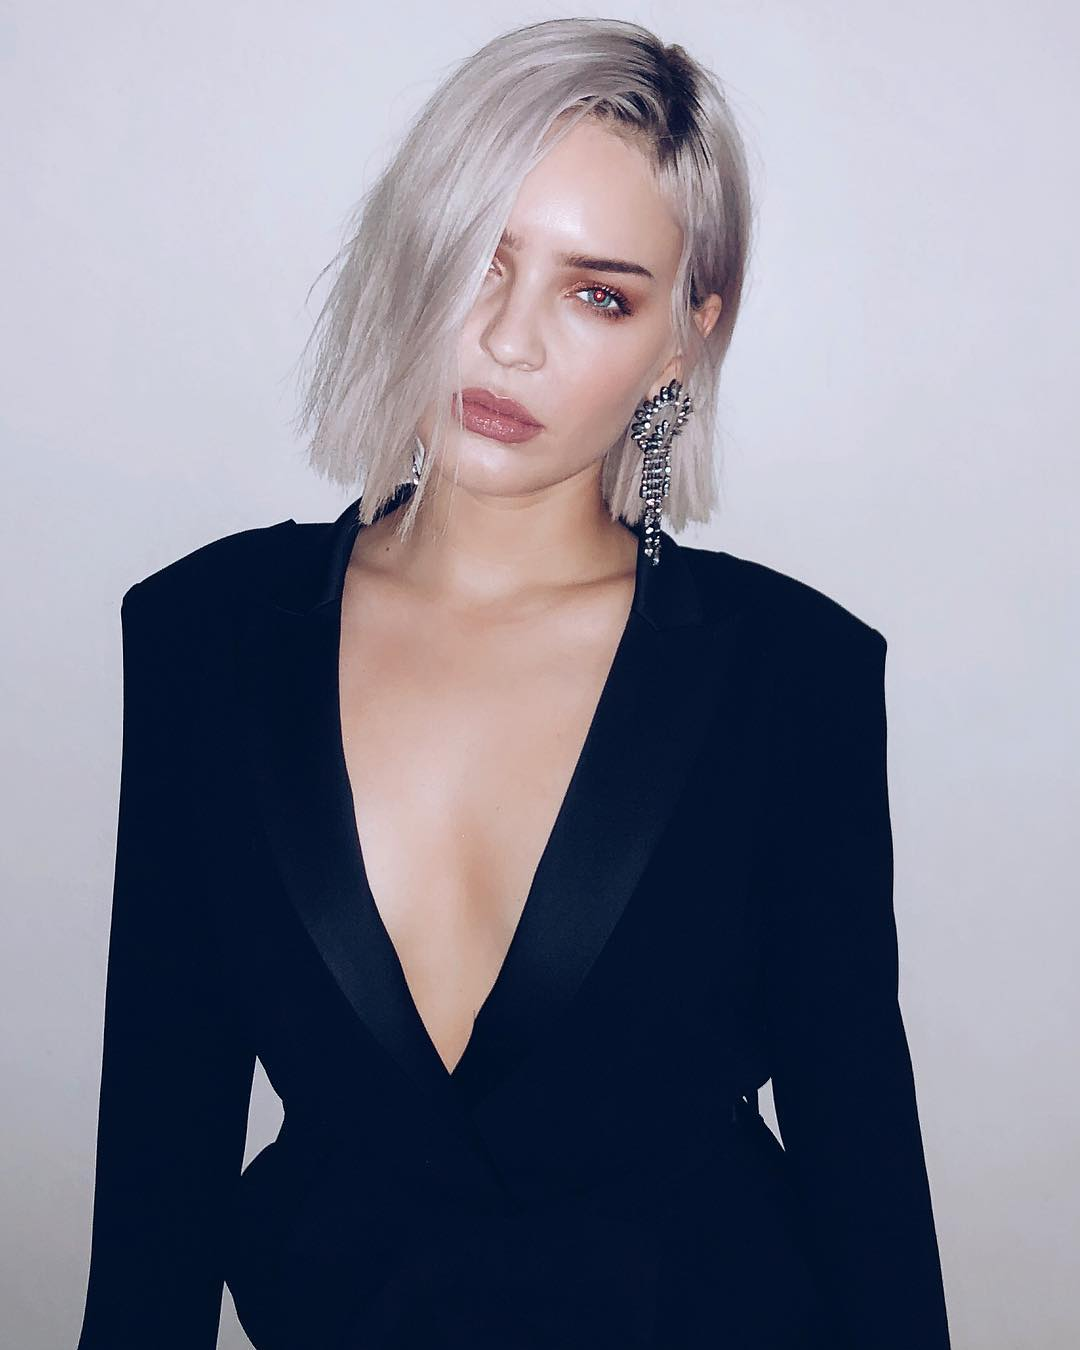 Anne-Marie hot cleavage pics